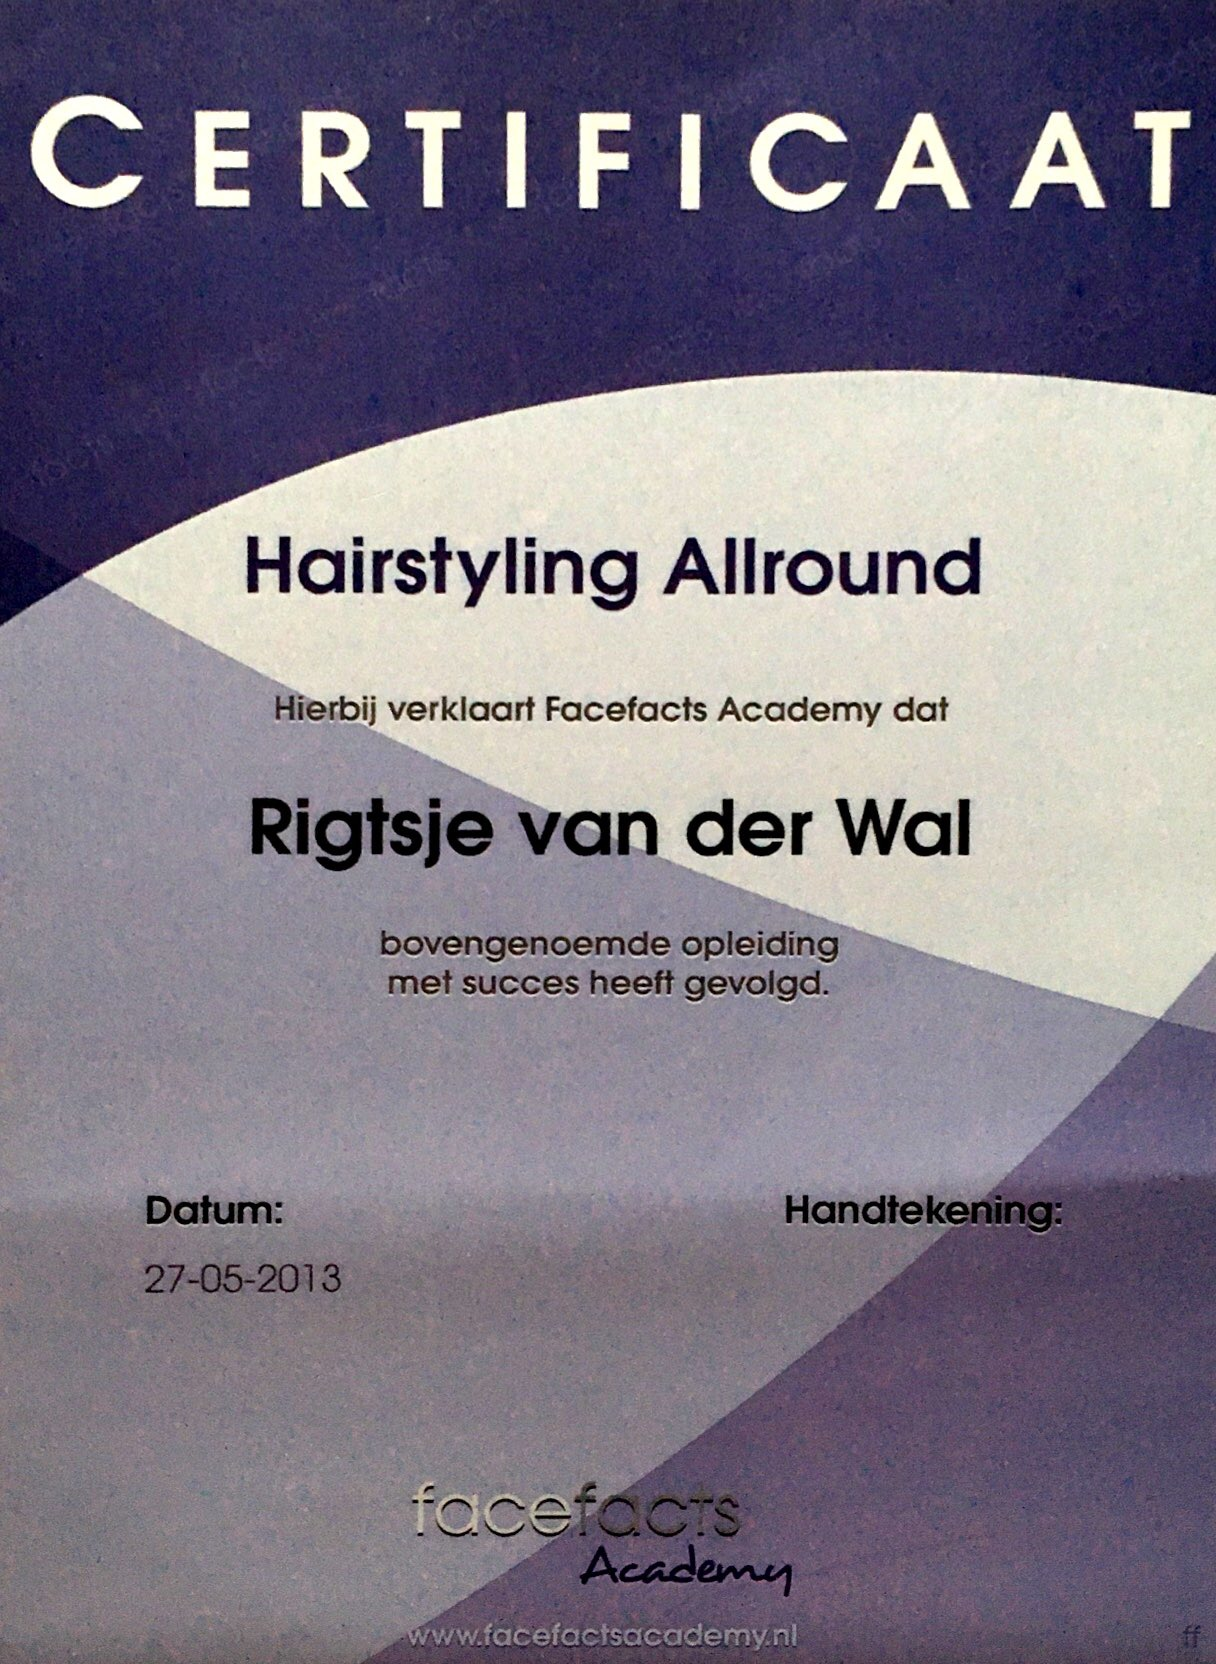 Hairstyling Allround